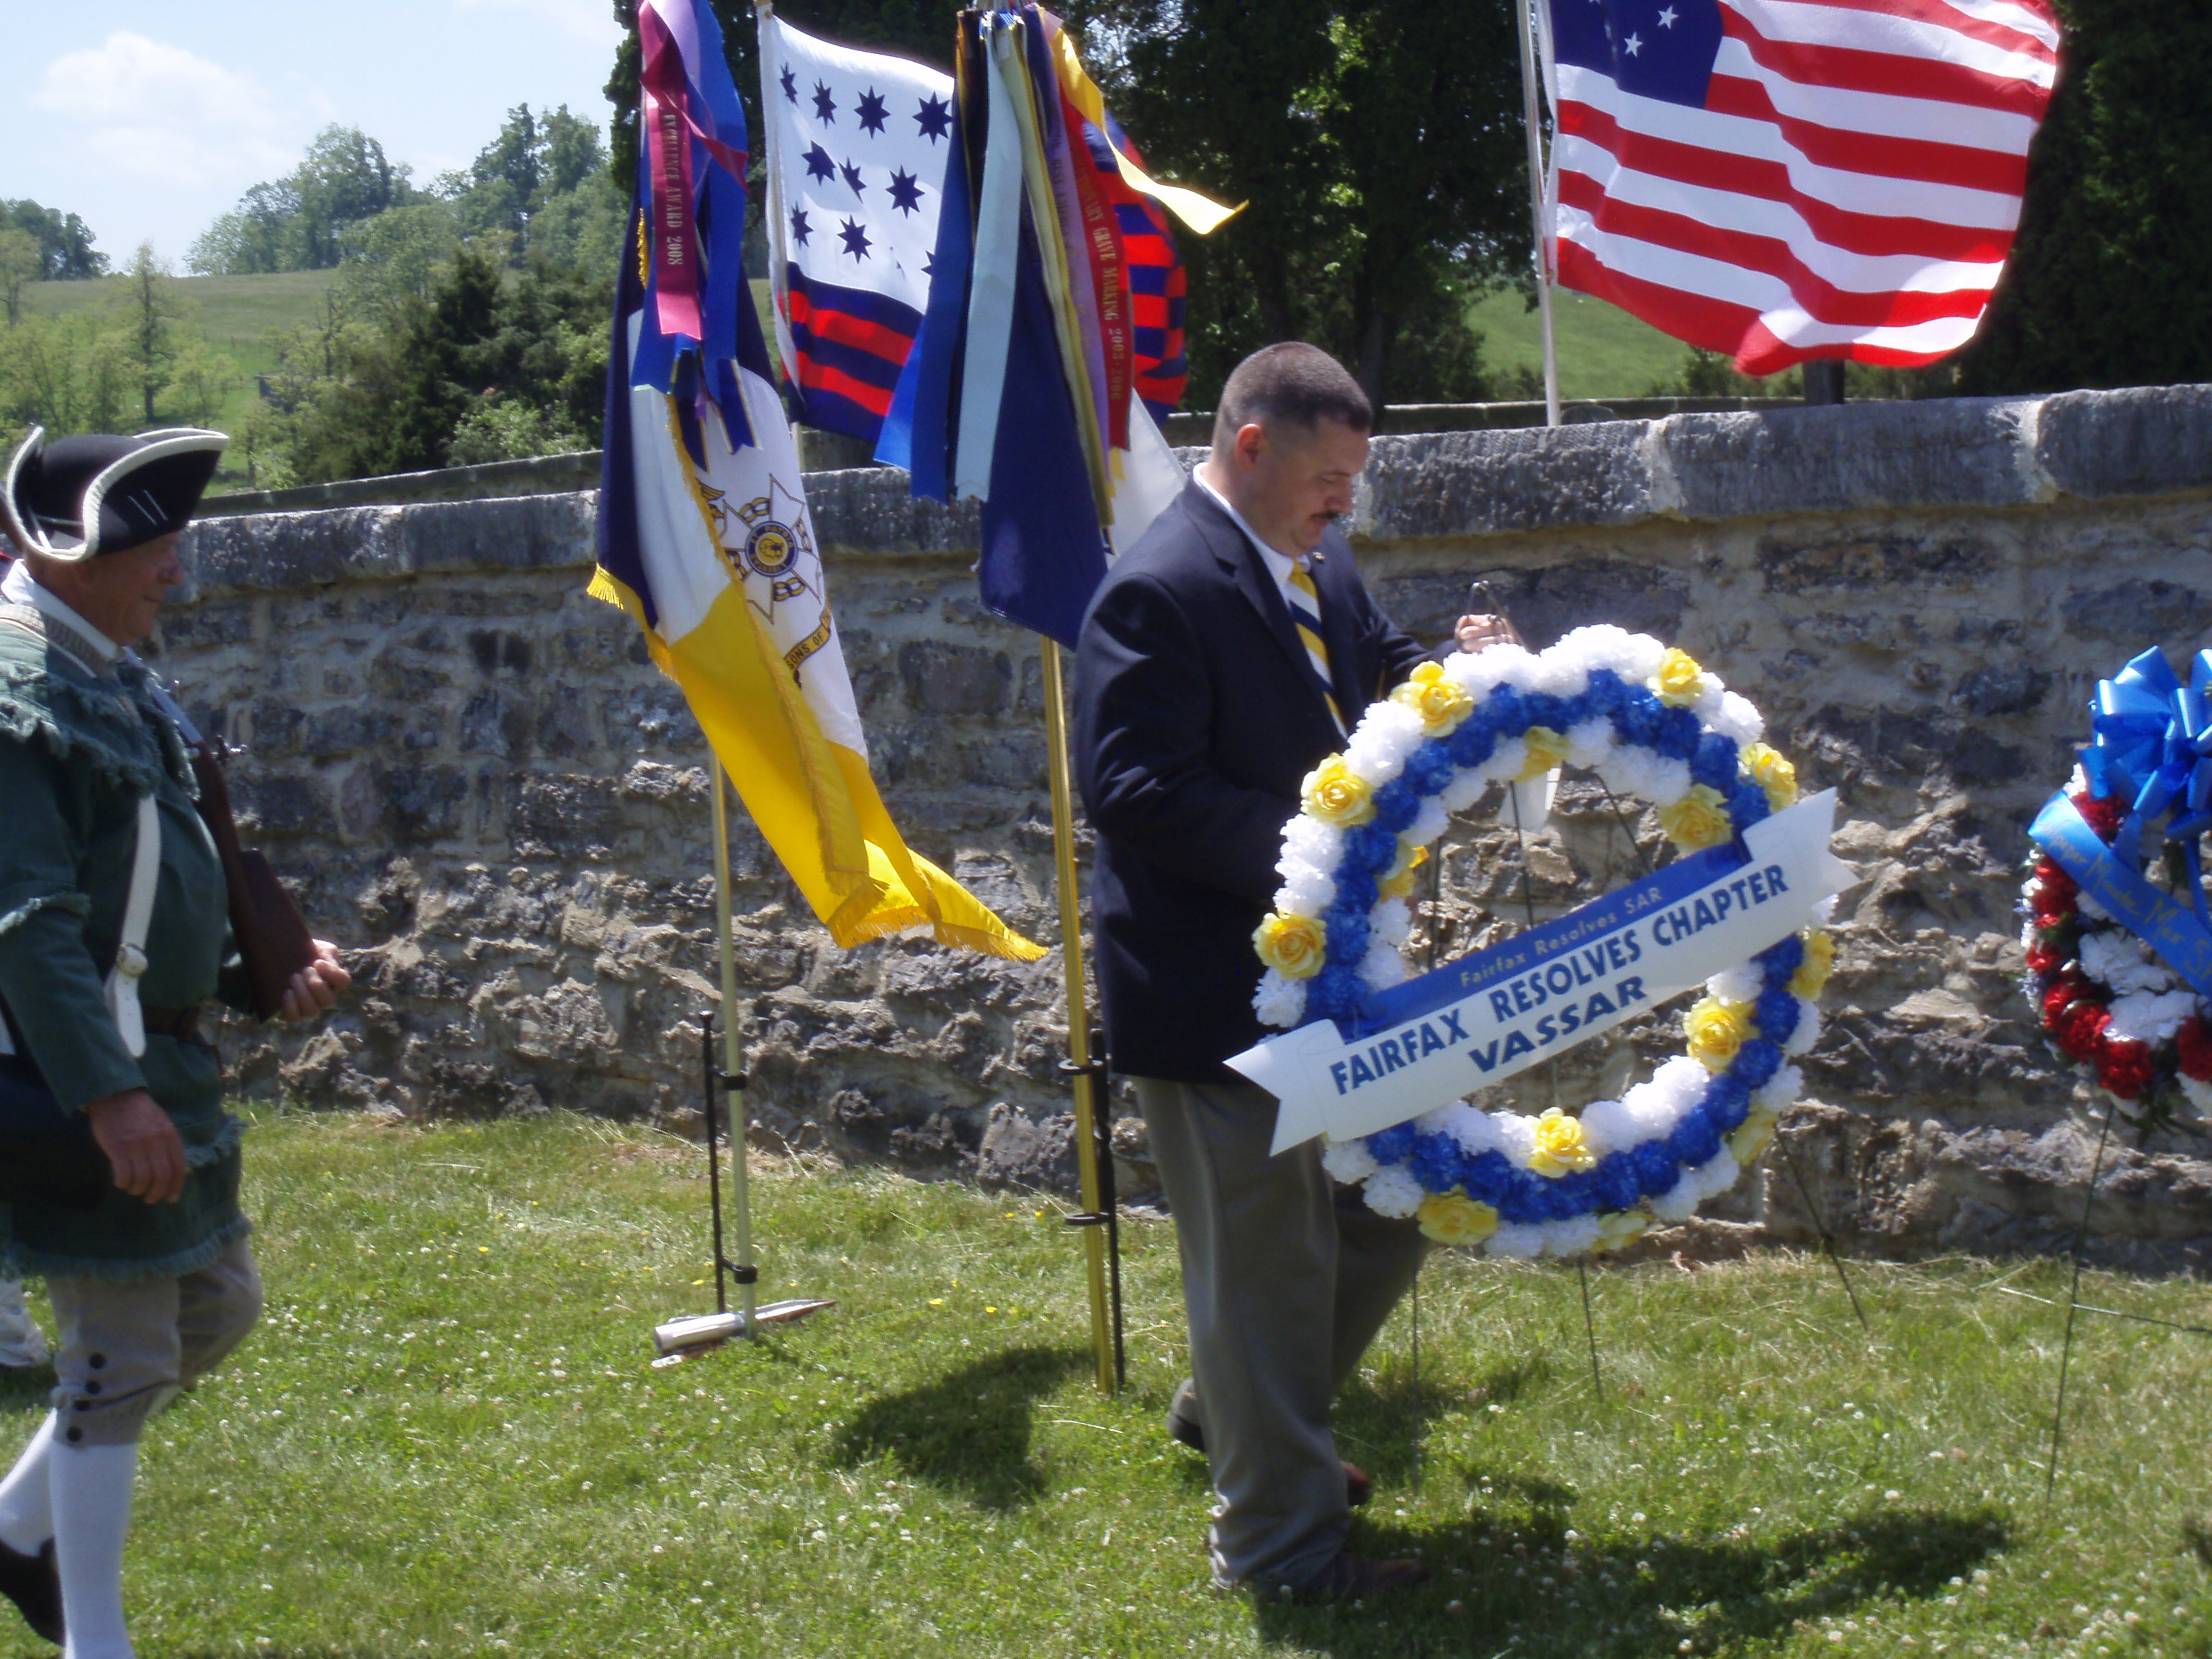 Fairfax Resolves SAR chapter lays wreath